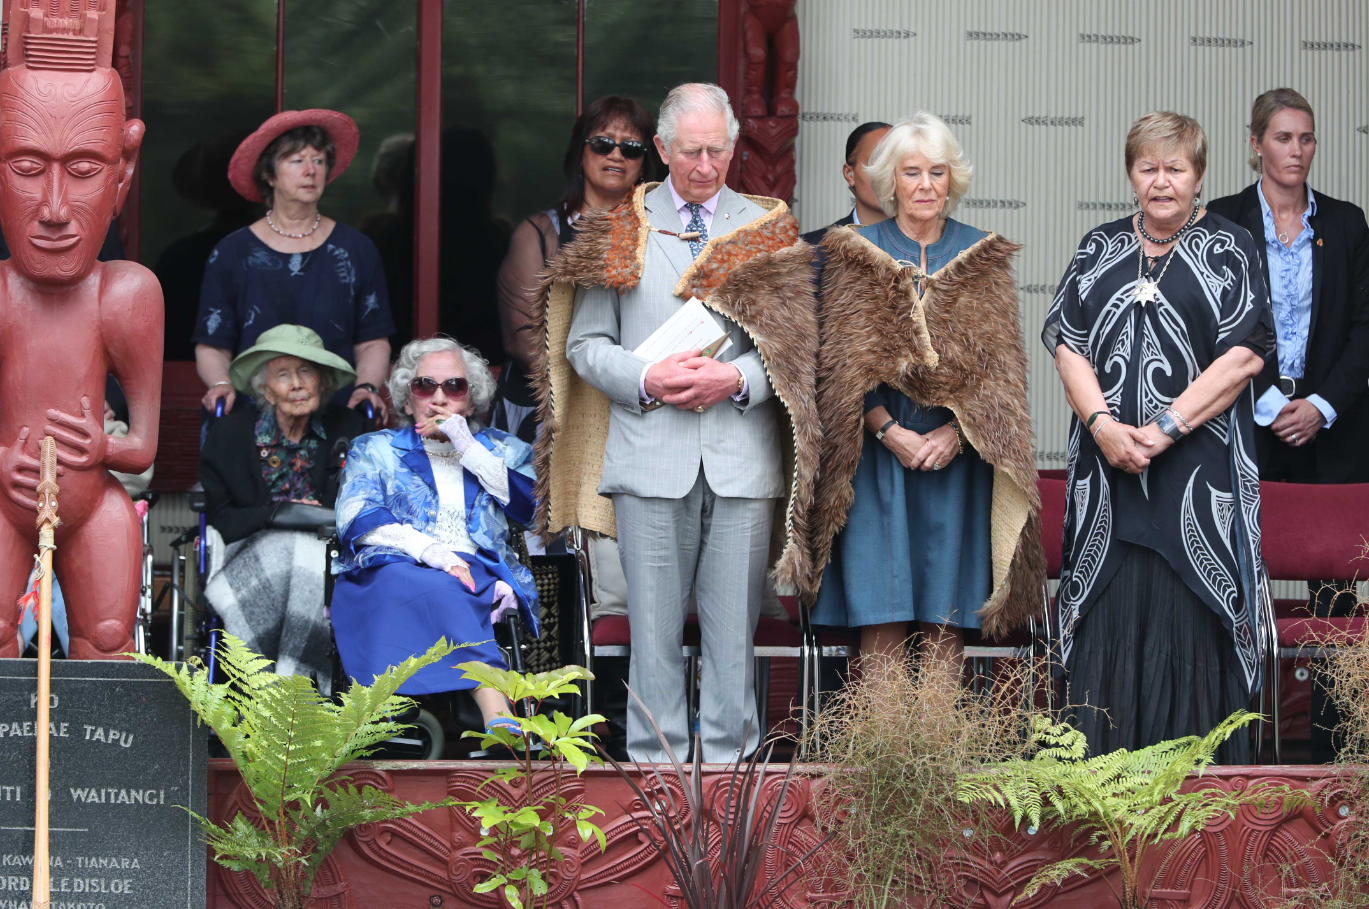 Doing what's right - Prince Charles opens up at Waitangi